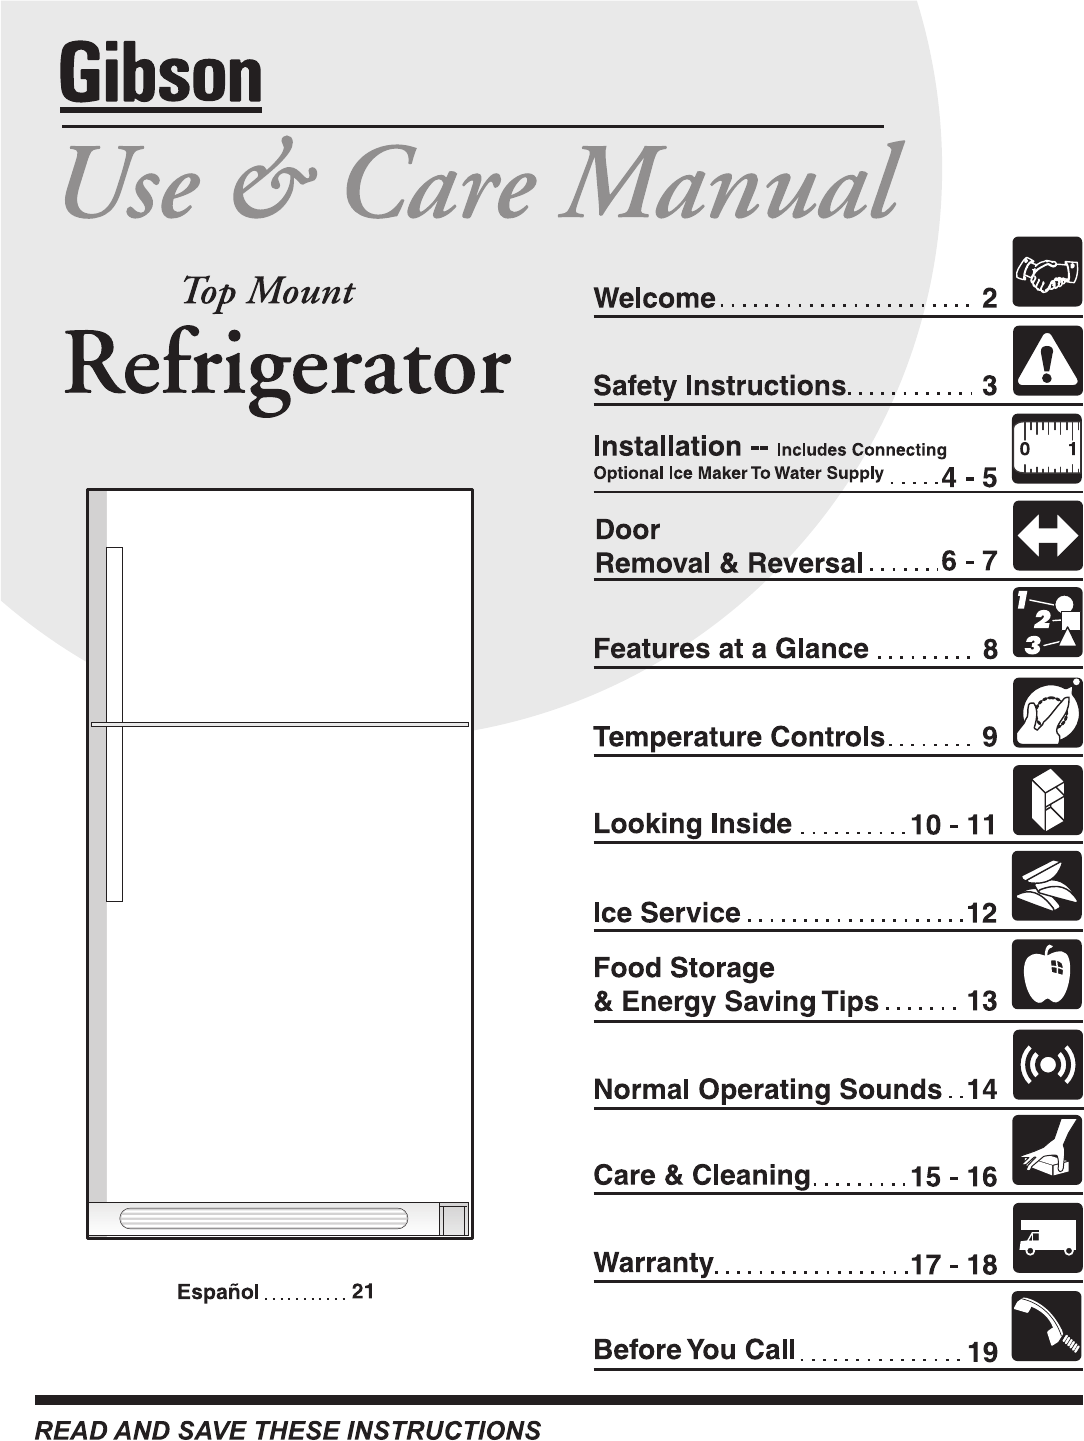 Electrolux - Gibson Refrigerator 240435505 User Guide